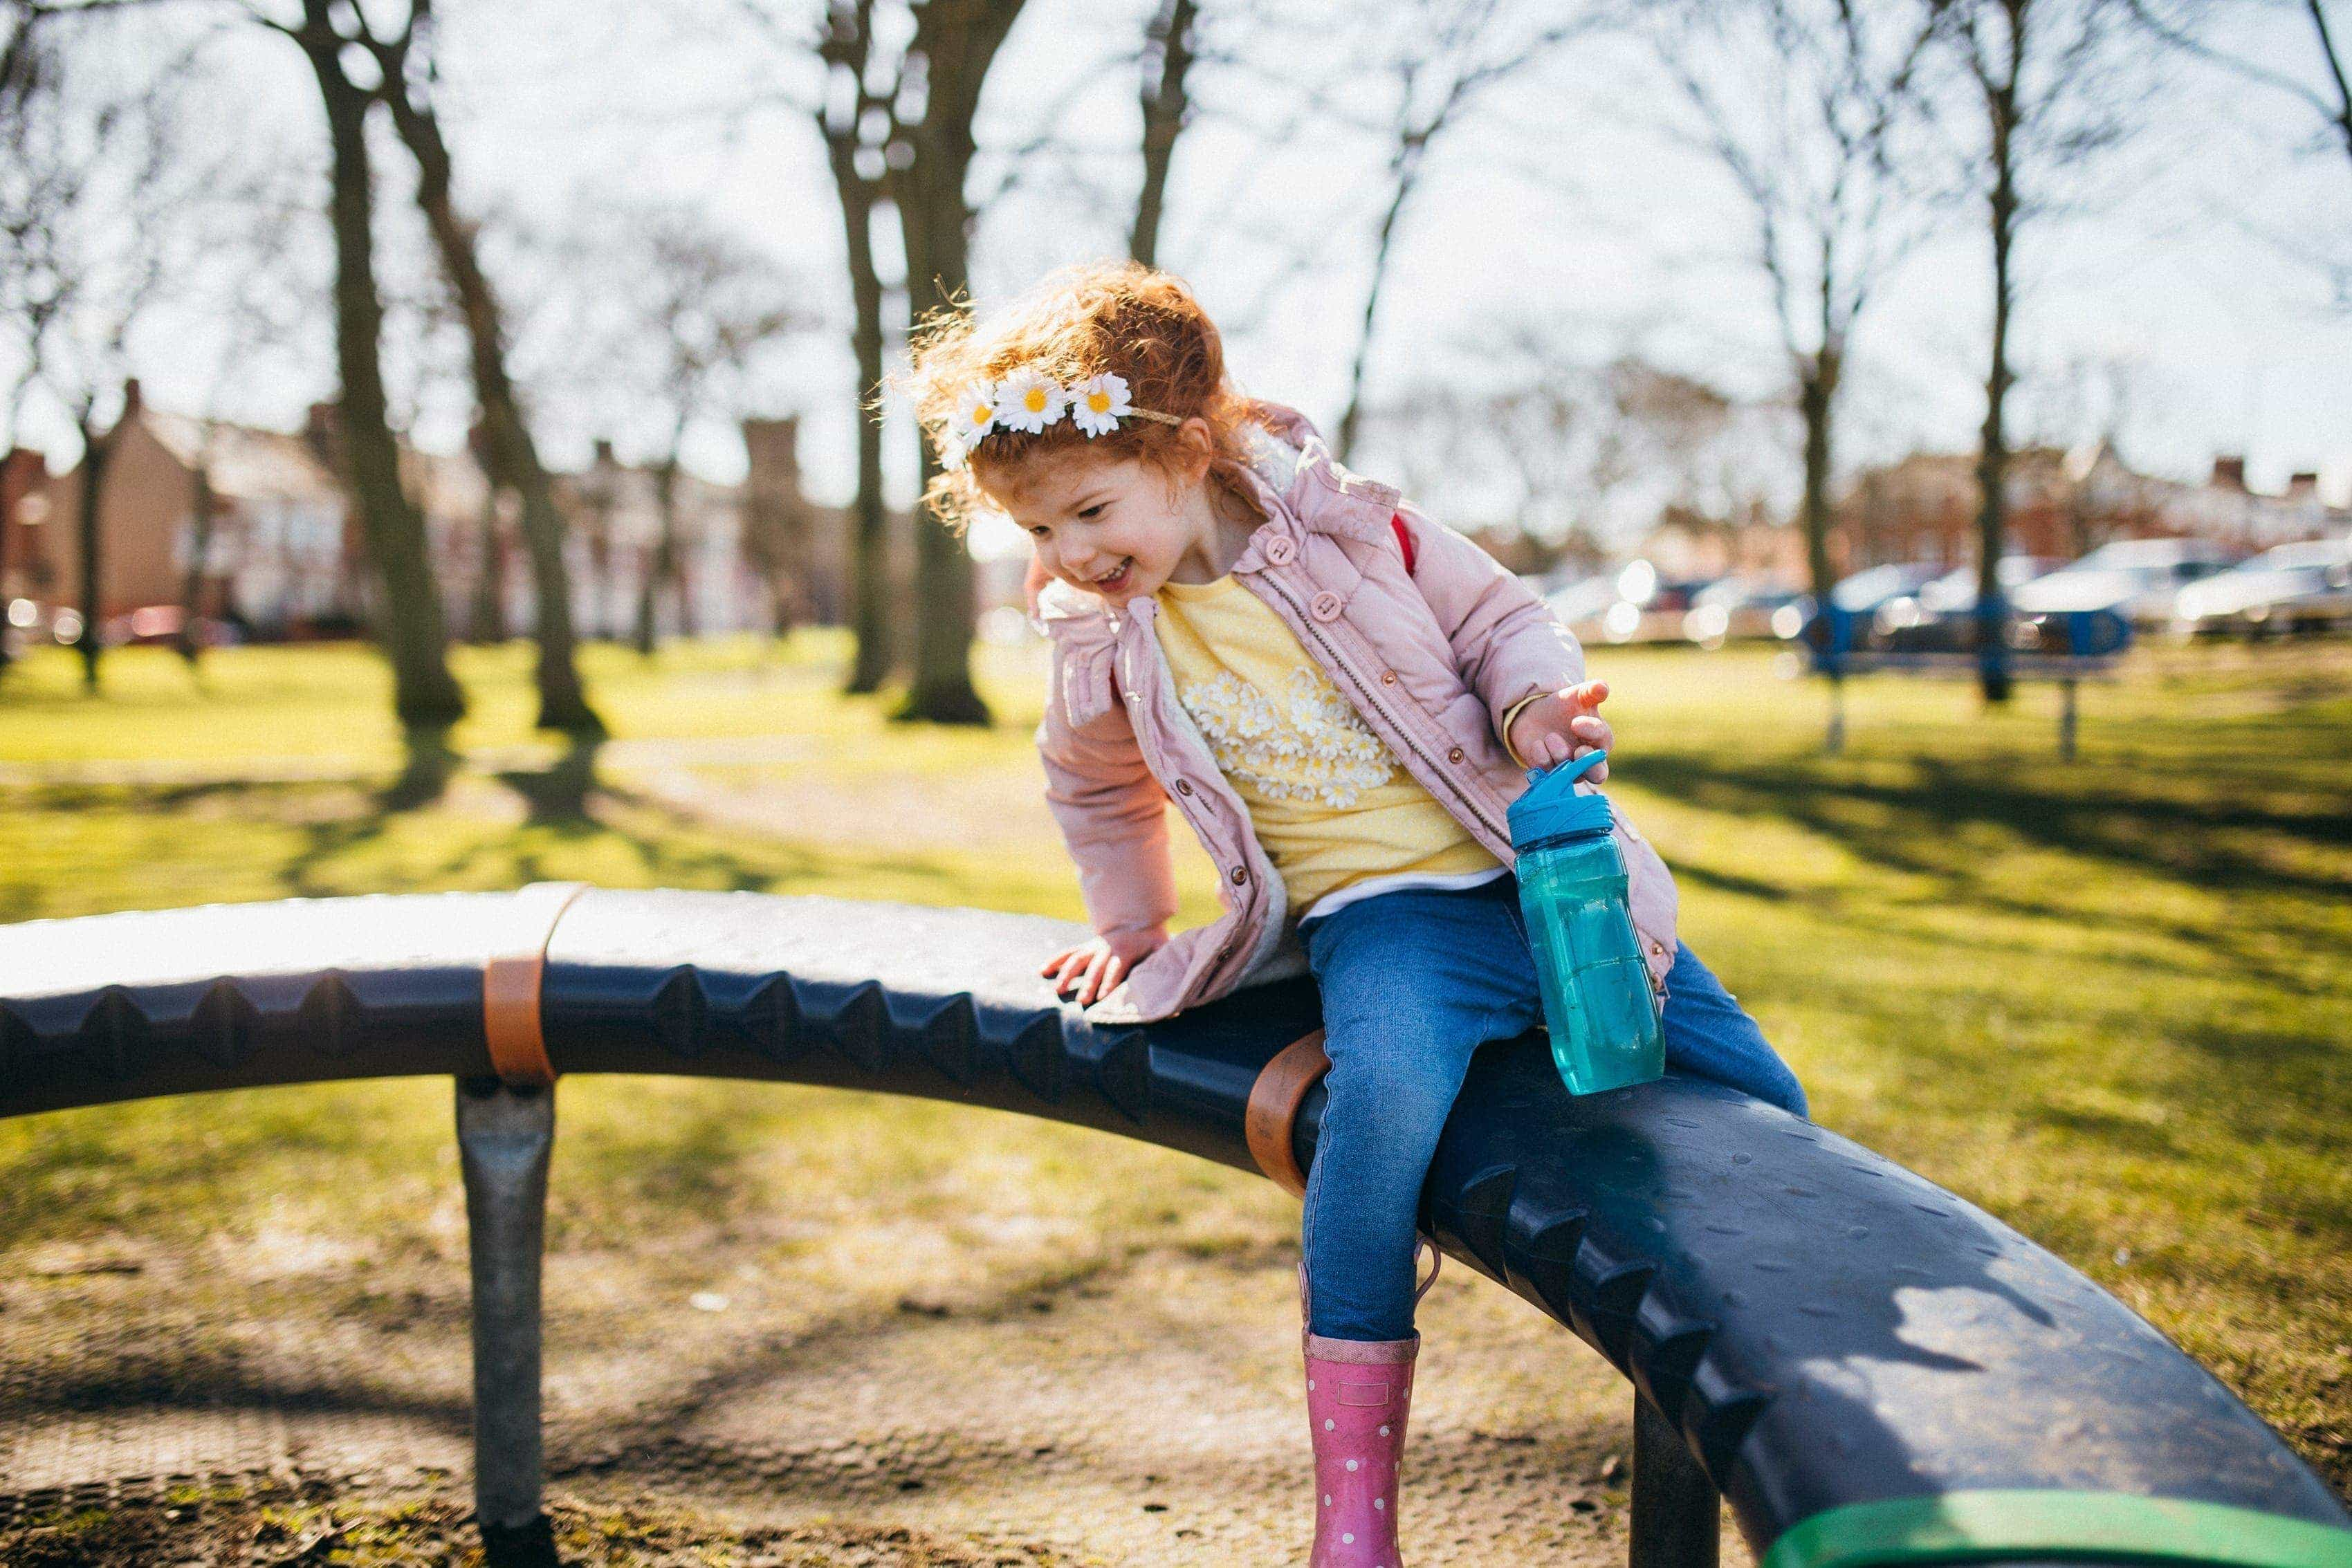 A young girl playing in a park